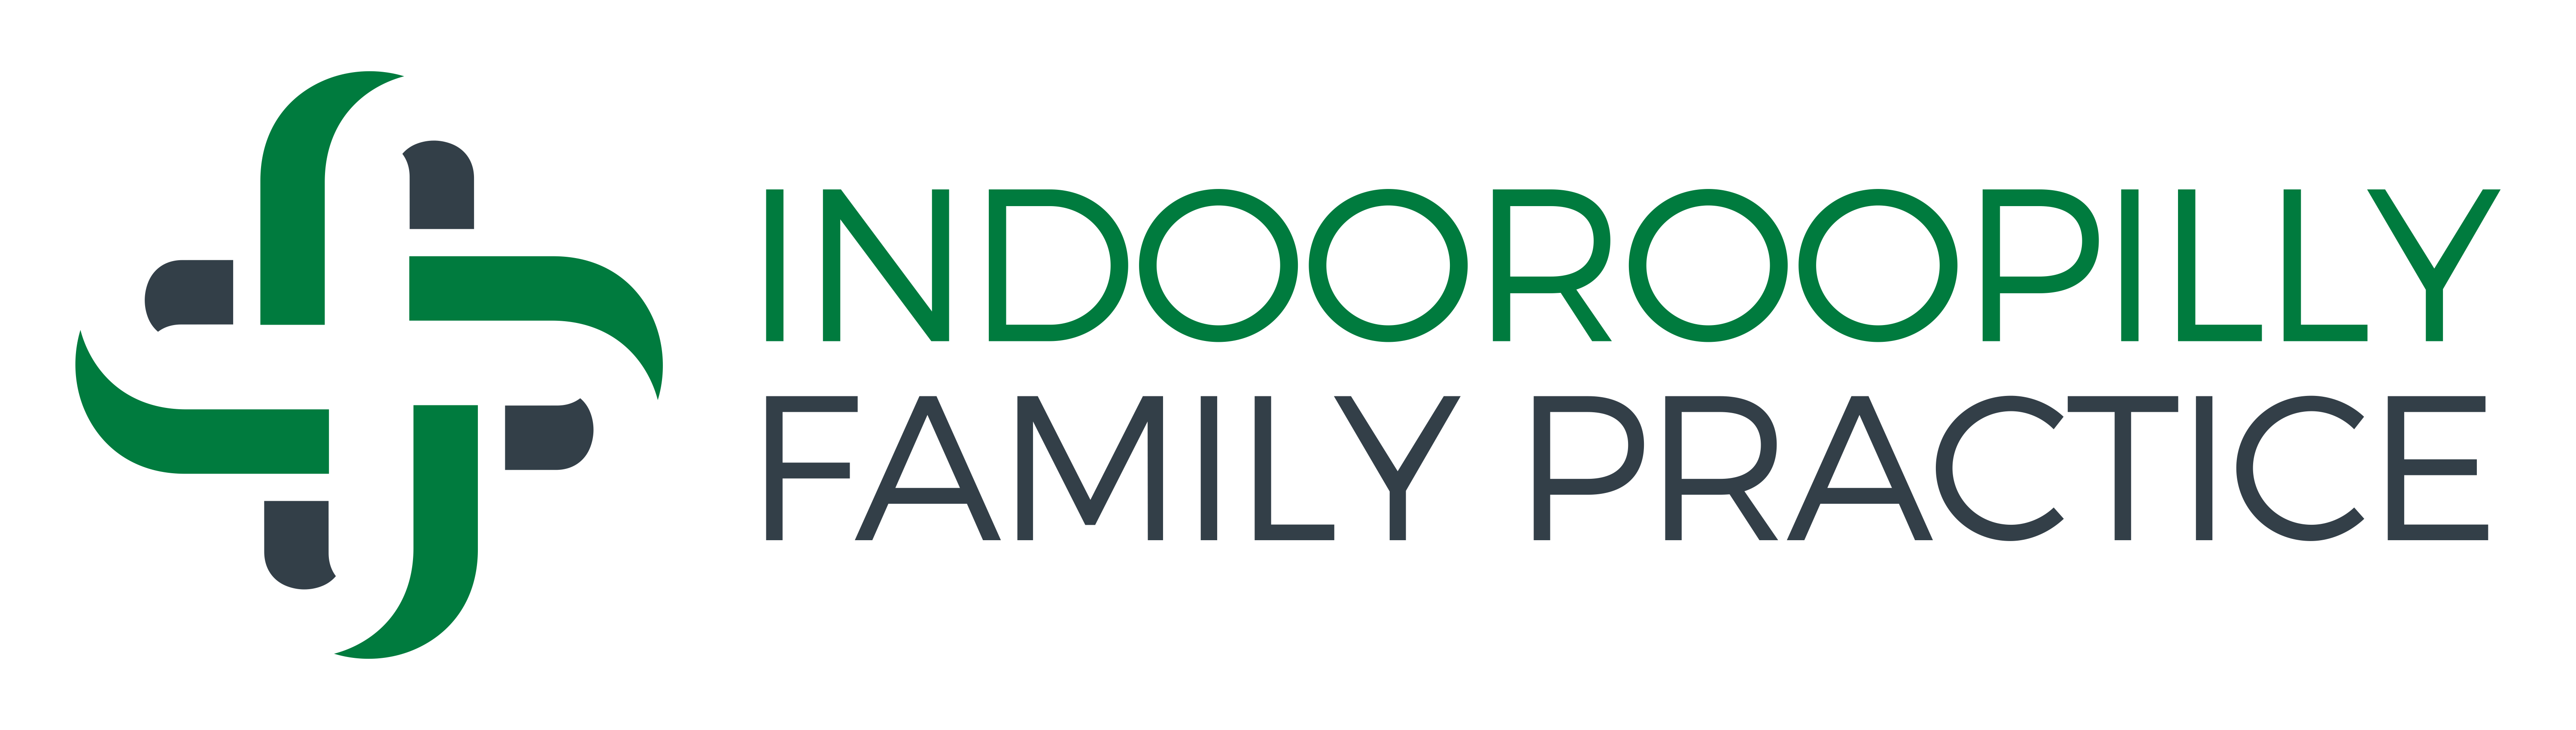 Our Team - Indooroopilly Family Practice : Indooroopilly